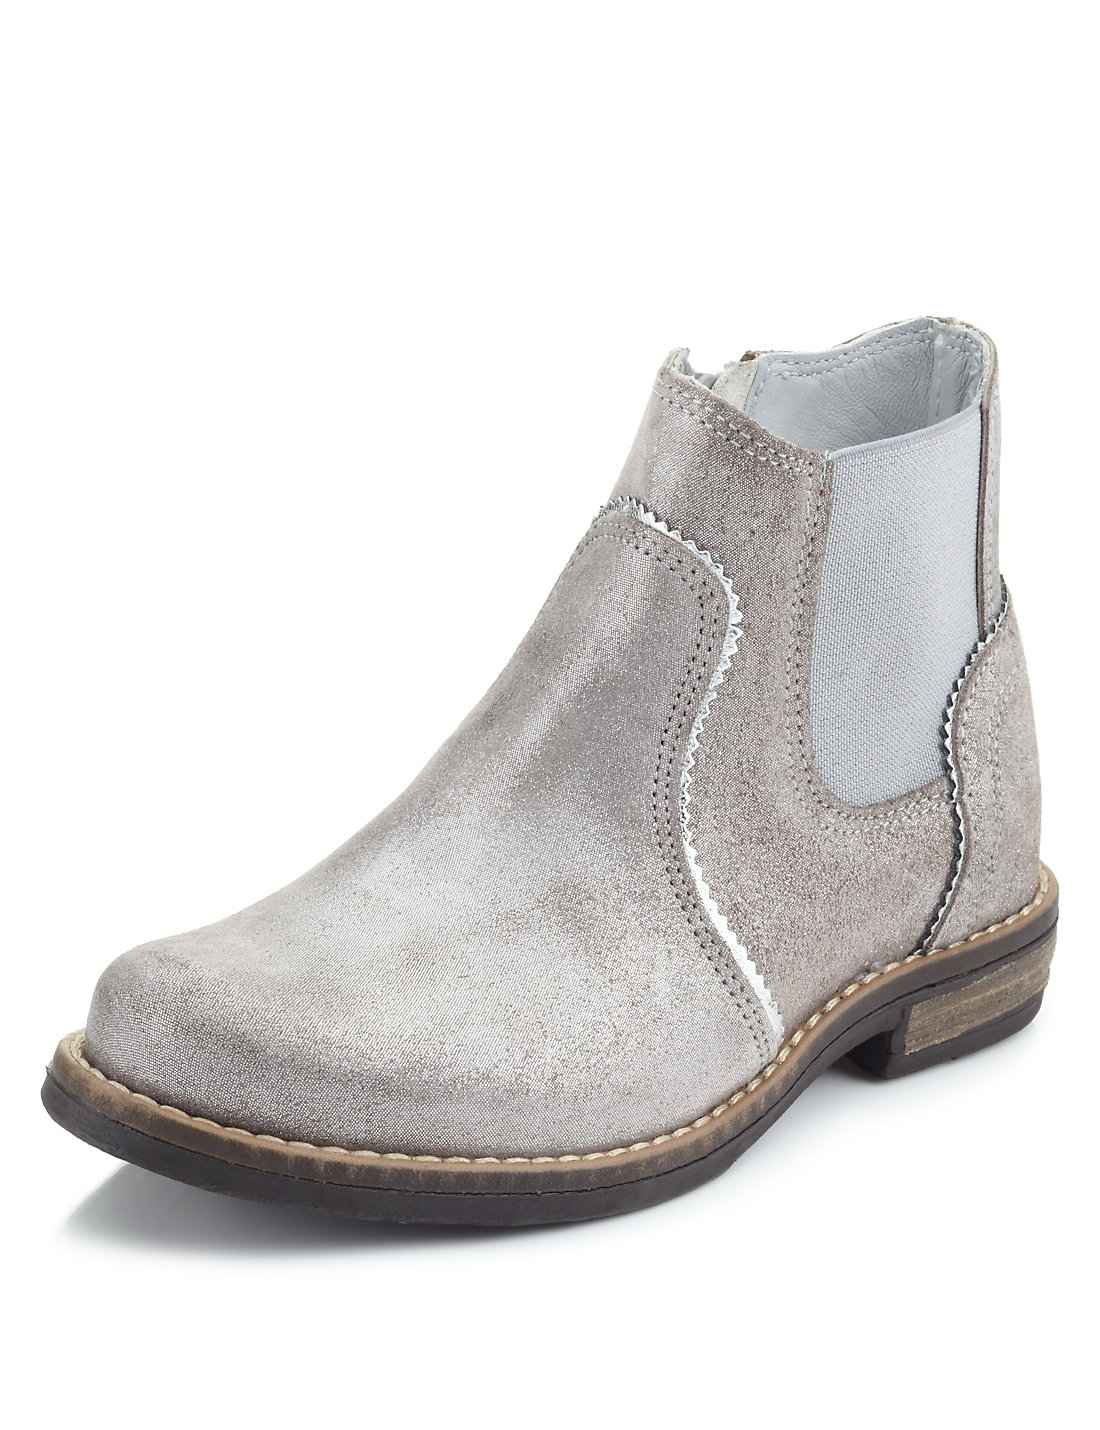 Leather Metallic Effect Ankle Boots (Younger Girls) | M&S